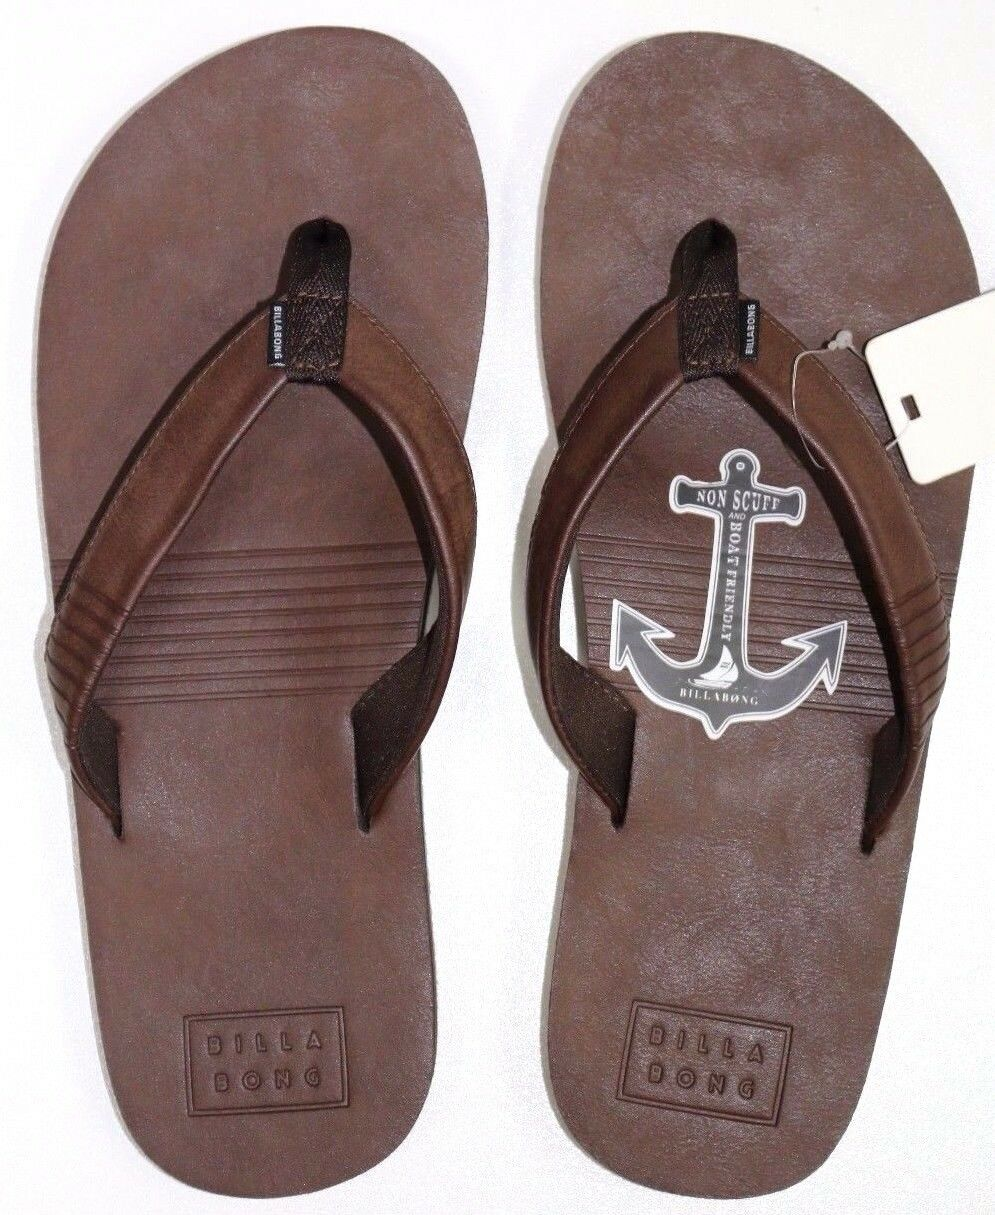 33e830bb19481 Men s Billabong All Day Brown Thongs       Flip Flops. Size 10 - 11. NWT.  RRP  39.99 03f785